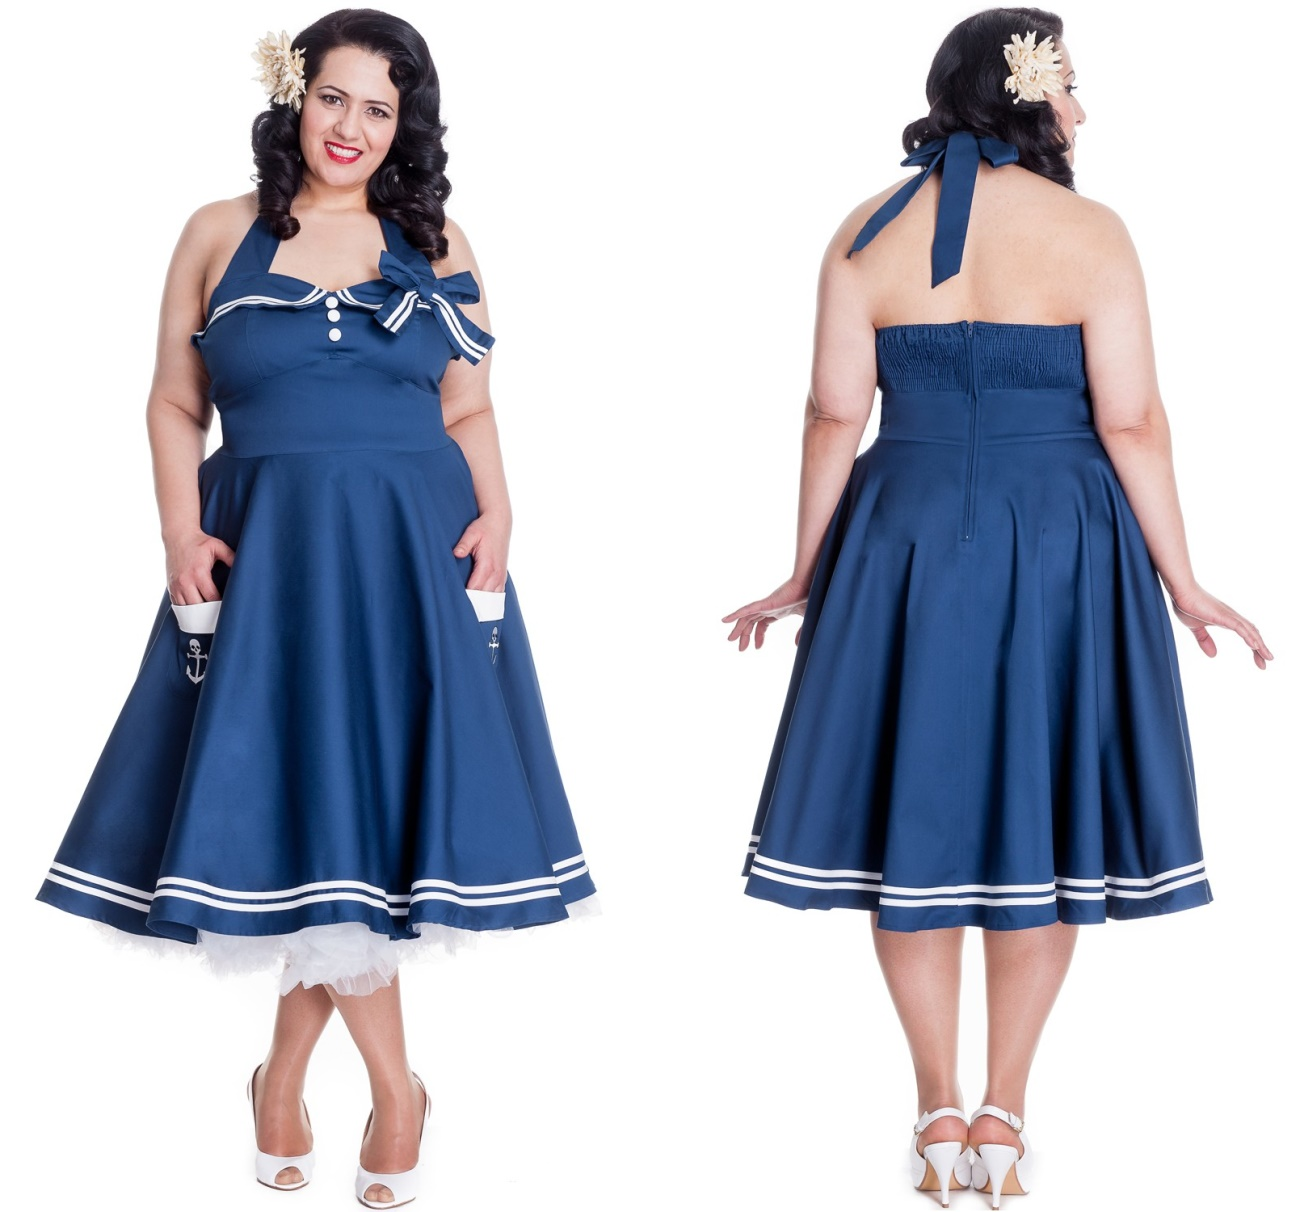 5d5325e5e006be Motley 50 s Dress Rock n Roll Kleid Übergrösse Hellbunny - Hellbunny ...